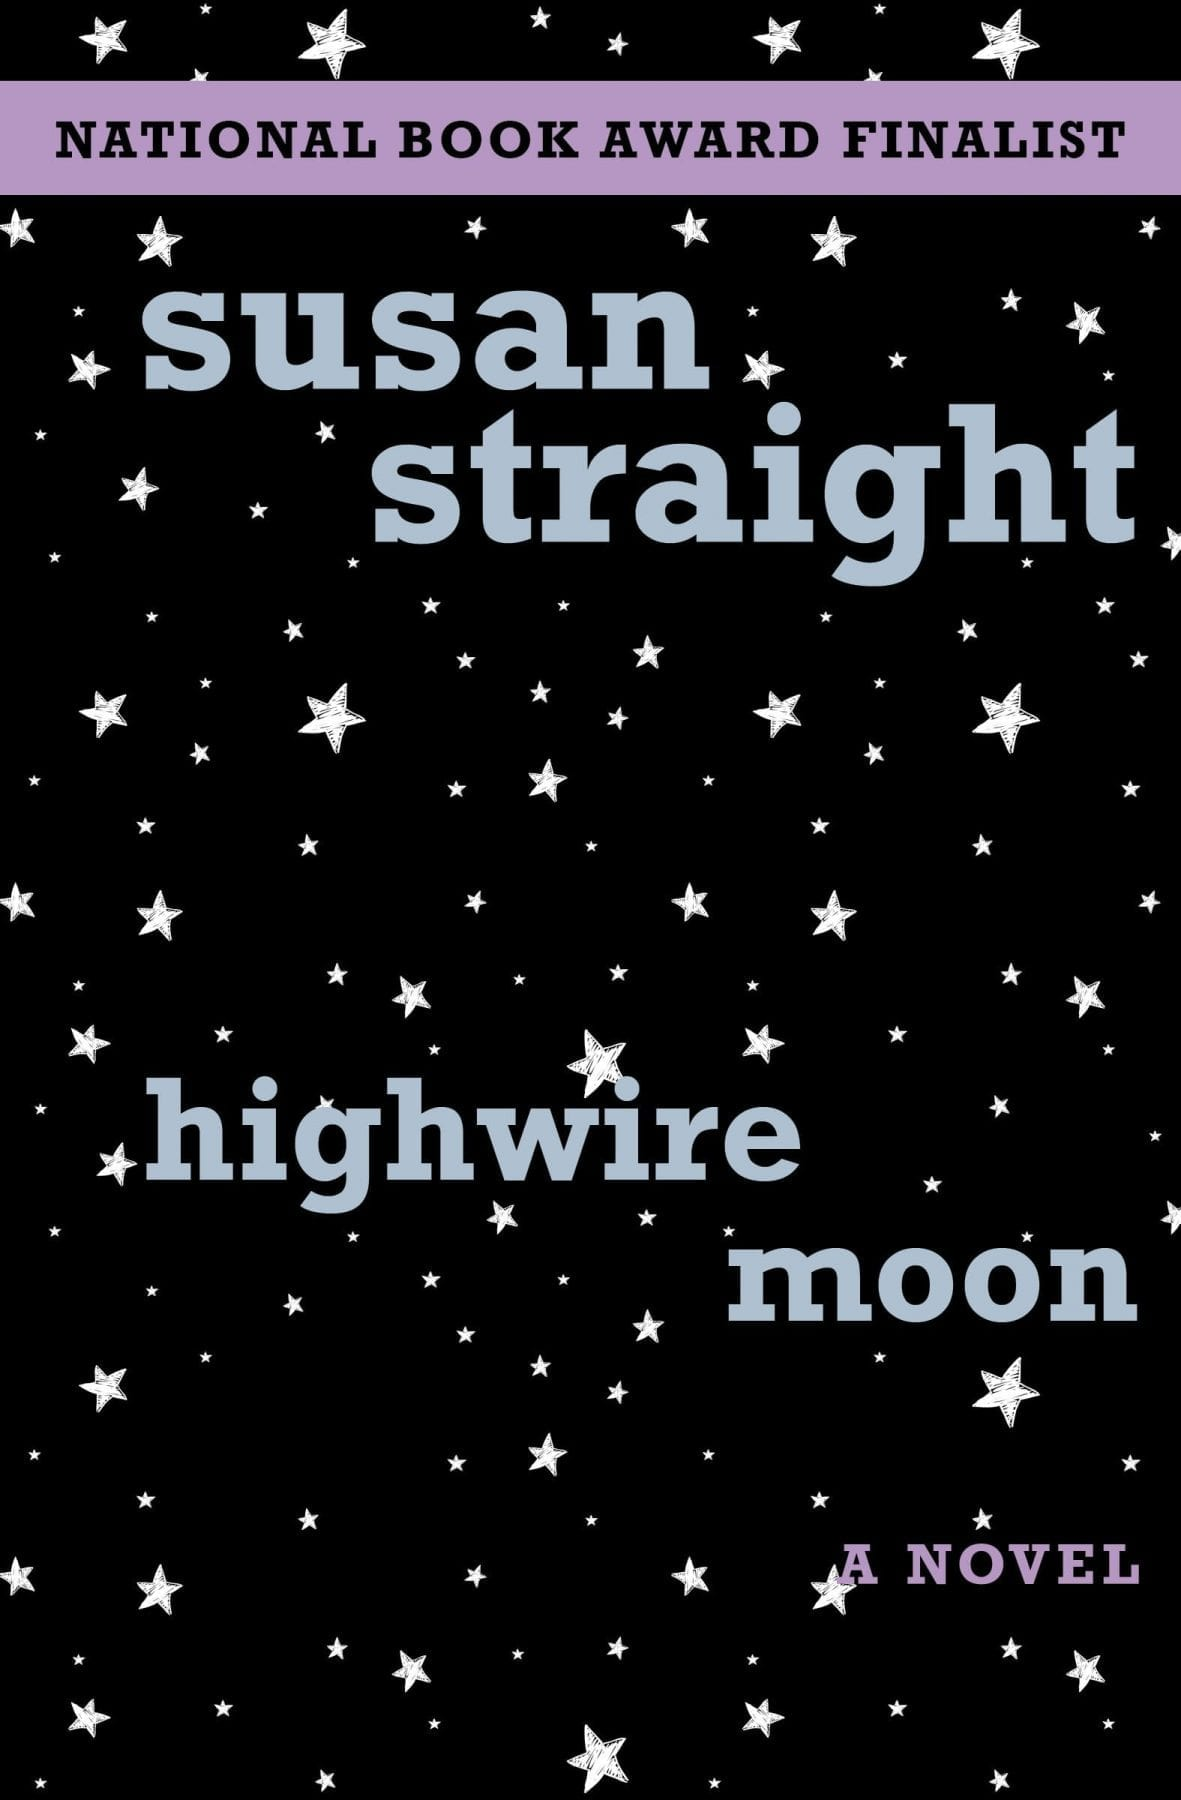 Highwire Moon by Susan Straight